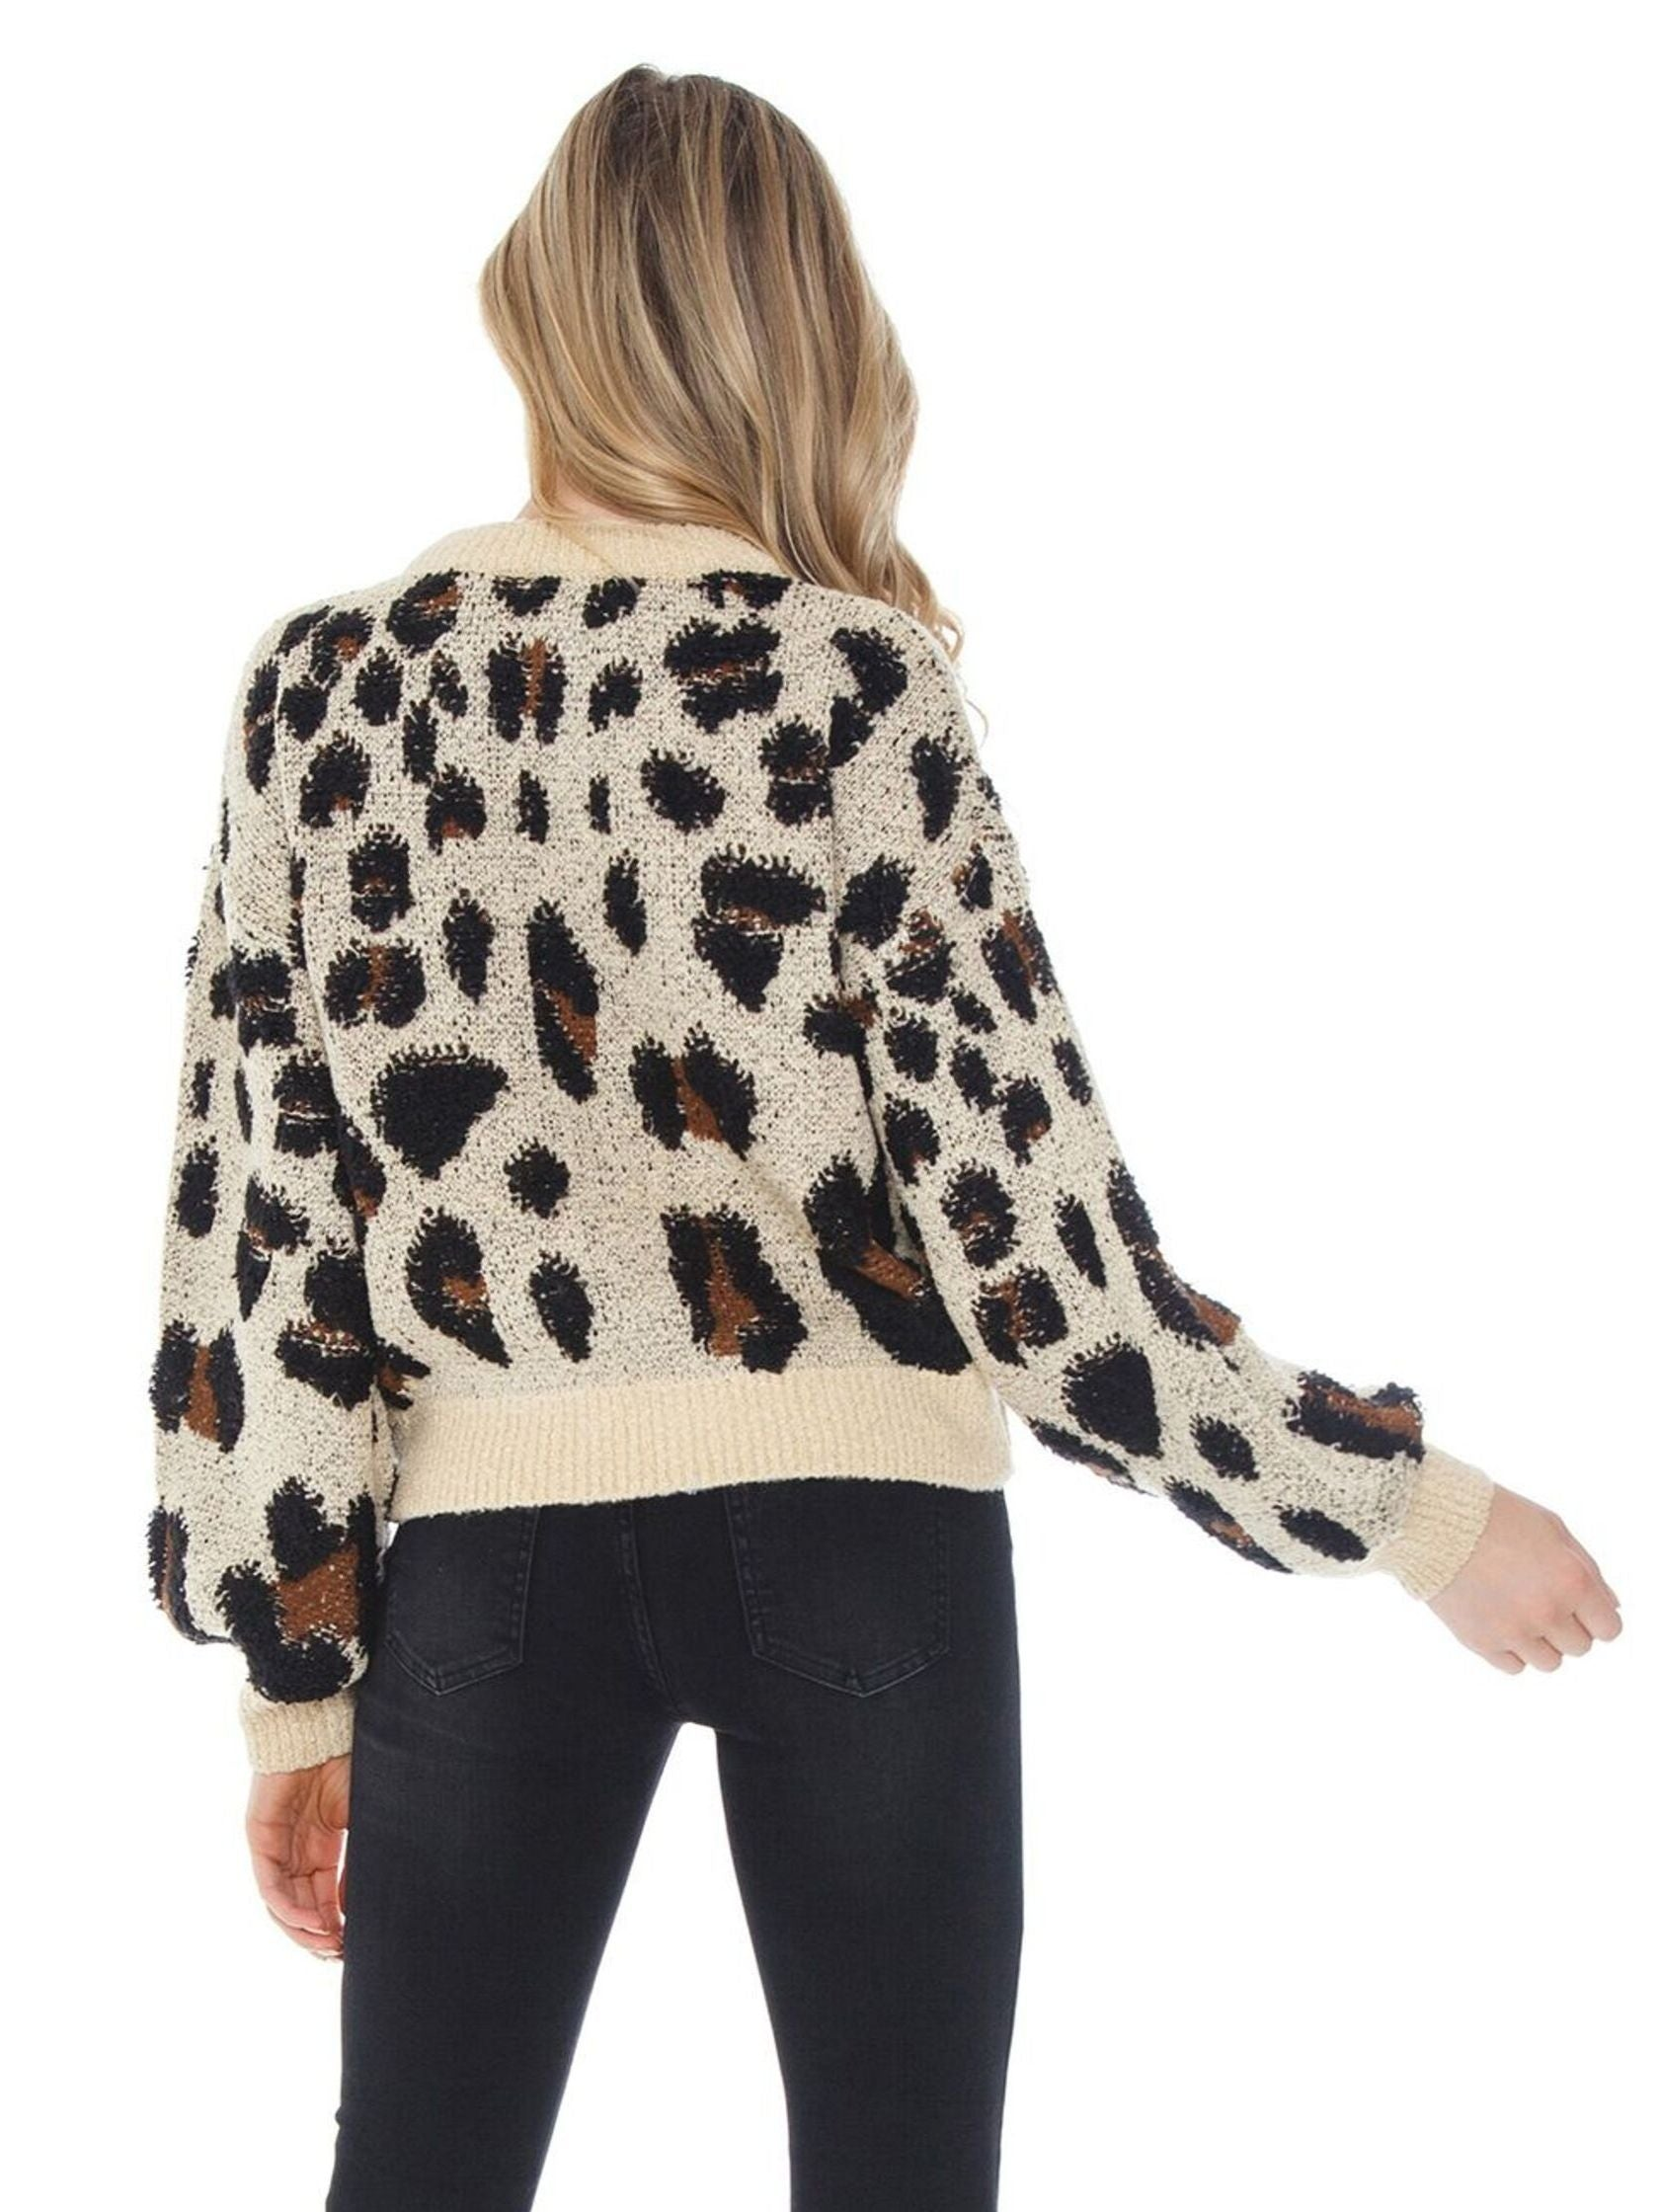 Women outfit in a sweater rental from BARDOT called Leopard Slouch Knit